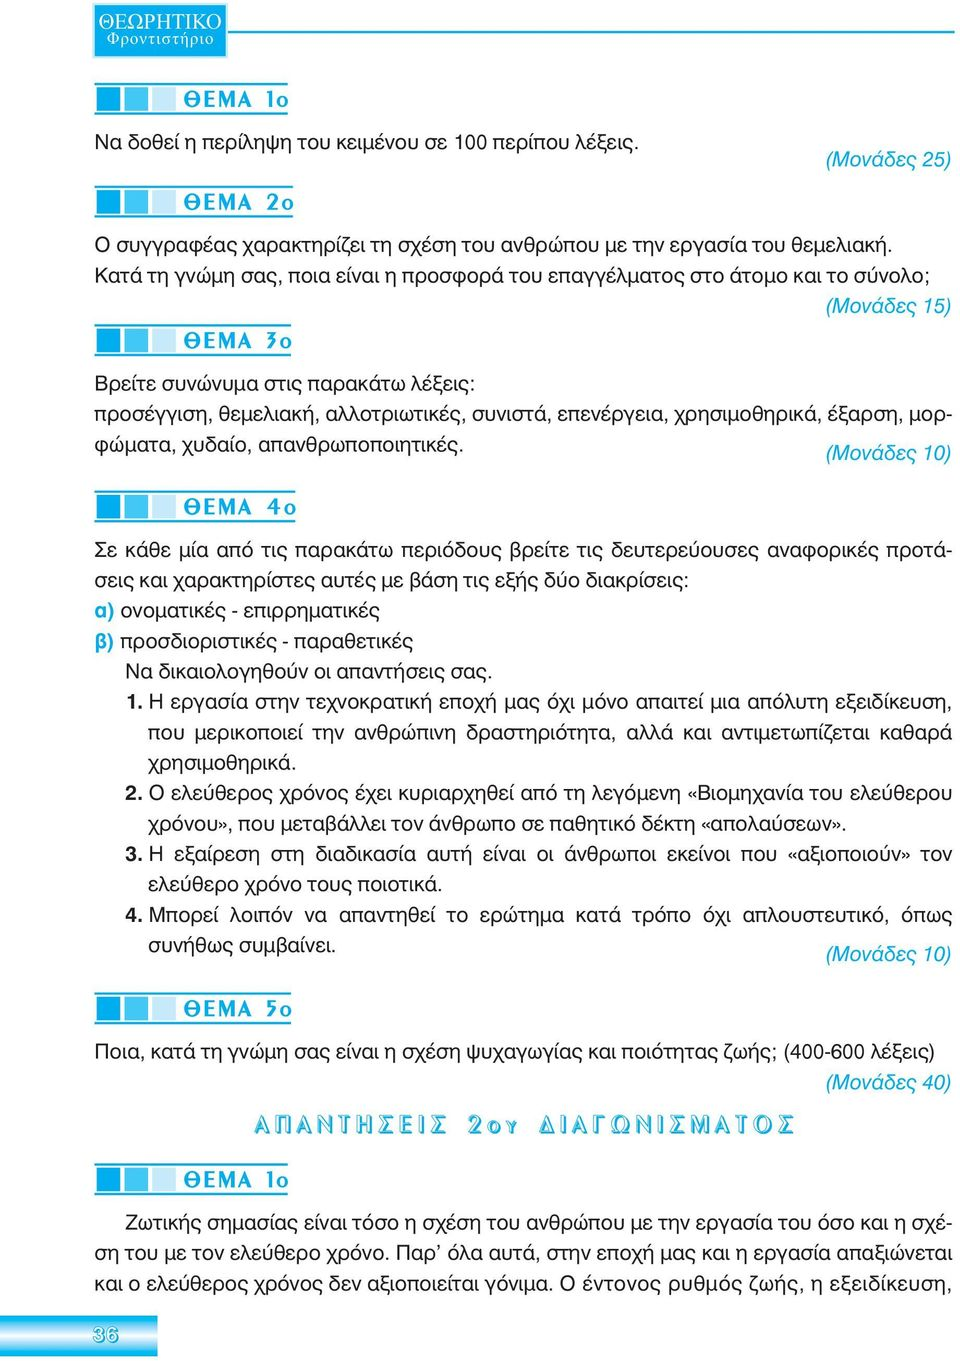 1c9b73e519a ΕΛΕΥΘΕΡΟΣ ΧΡΟΝΟΣ ΚΑΙ ΠΟΙΟΤΗΤΑ ΖΩΗΣ - PDF